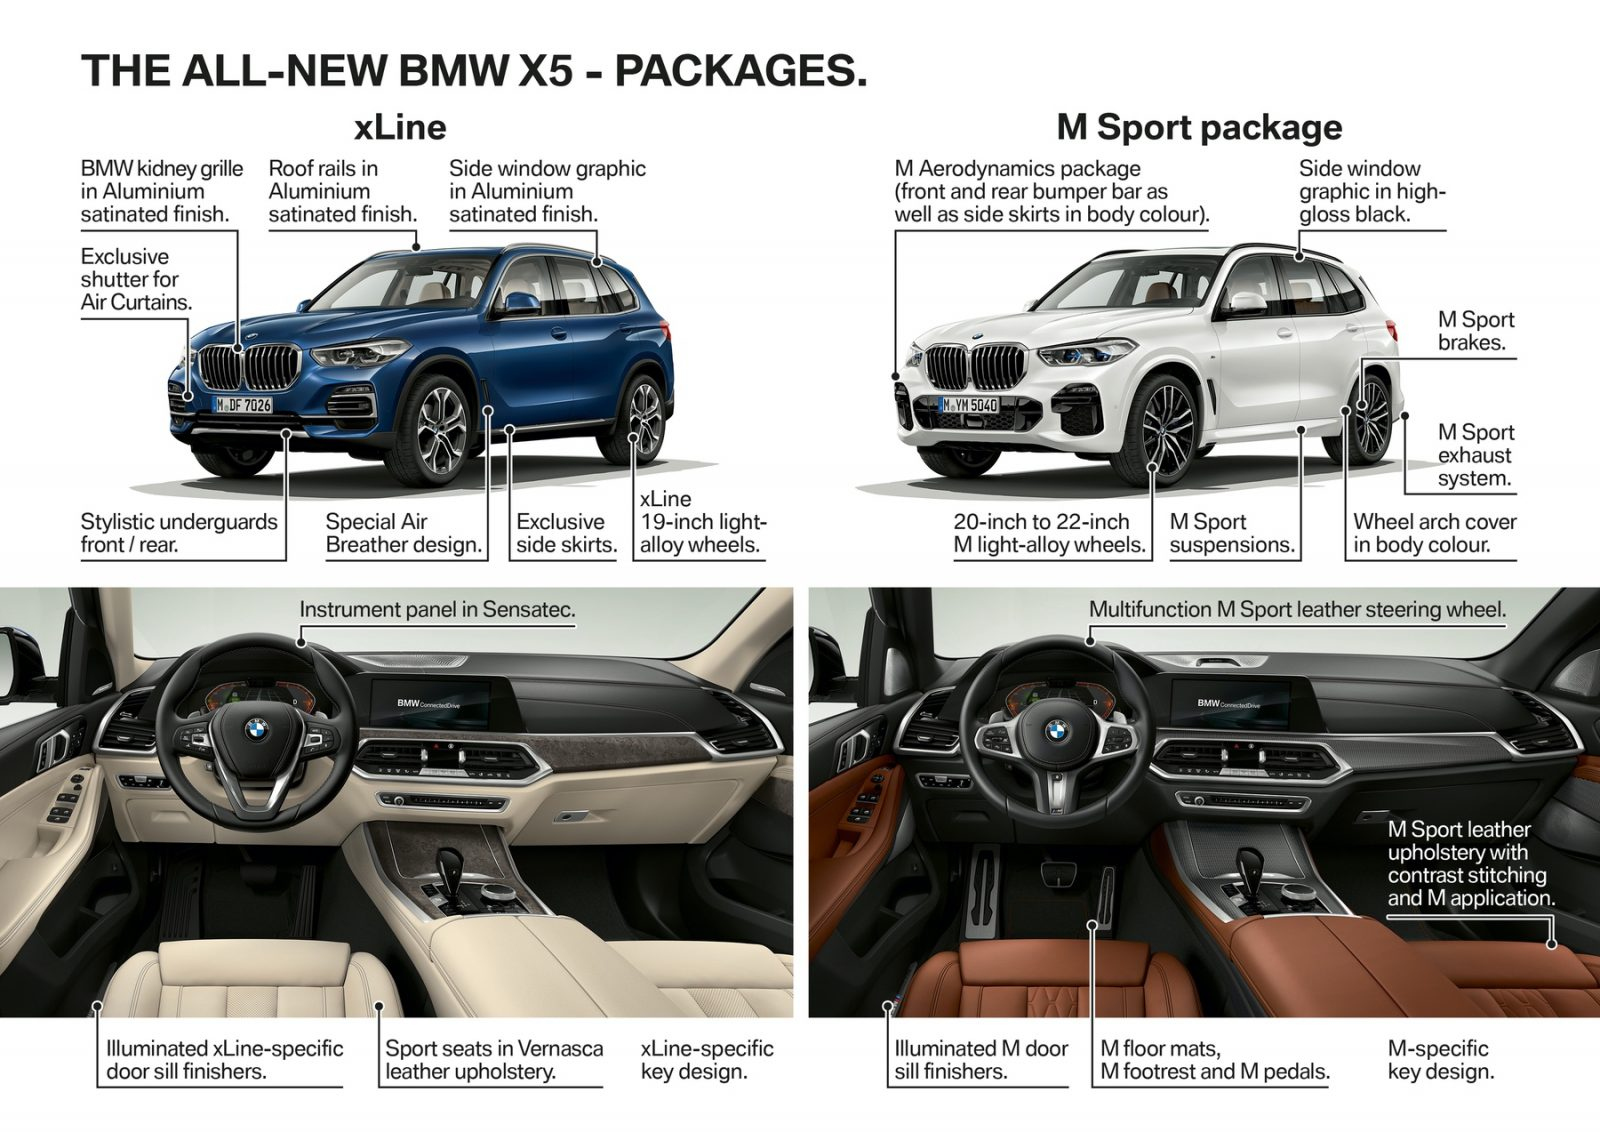 2018 BMW X5 vs the All-New BMW X5